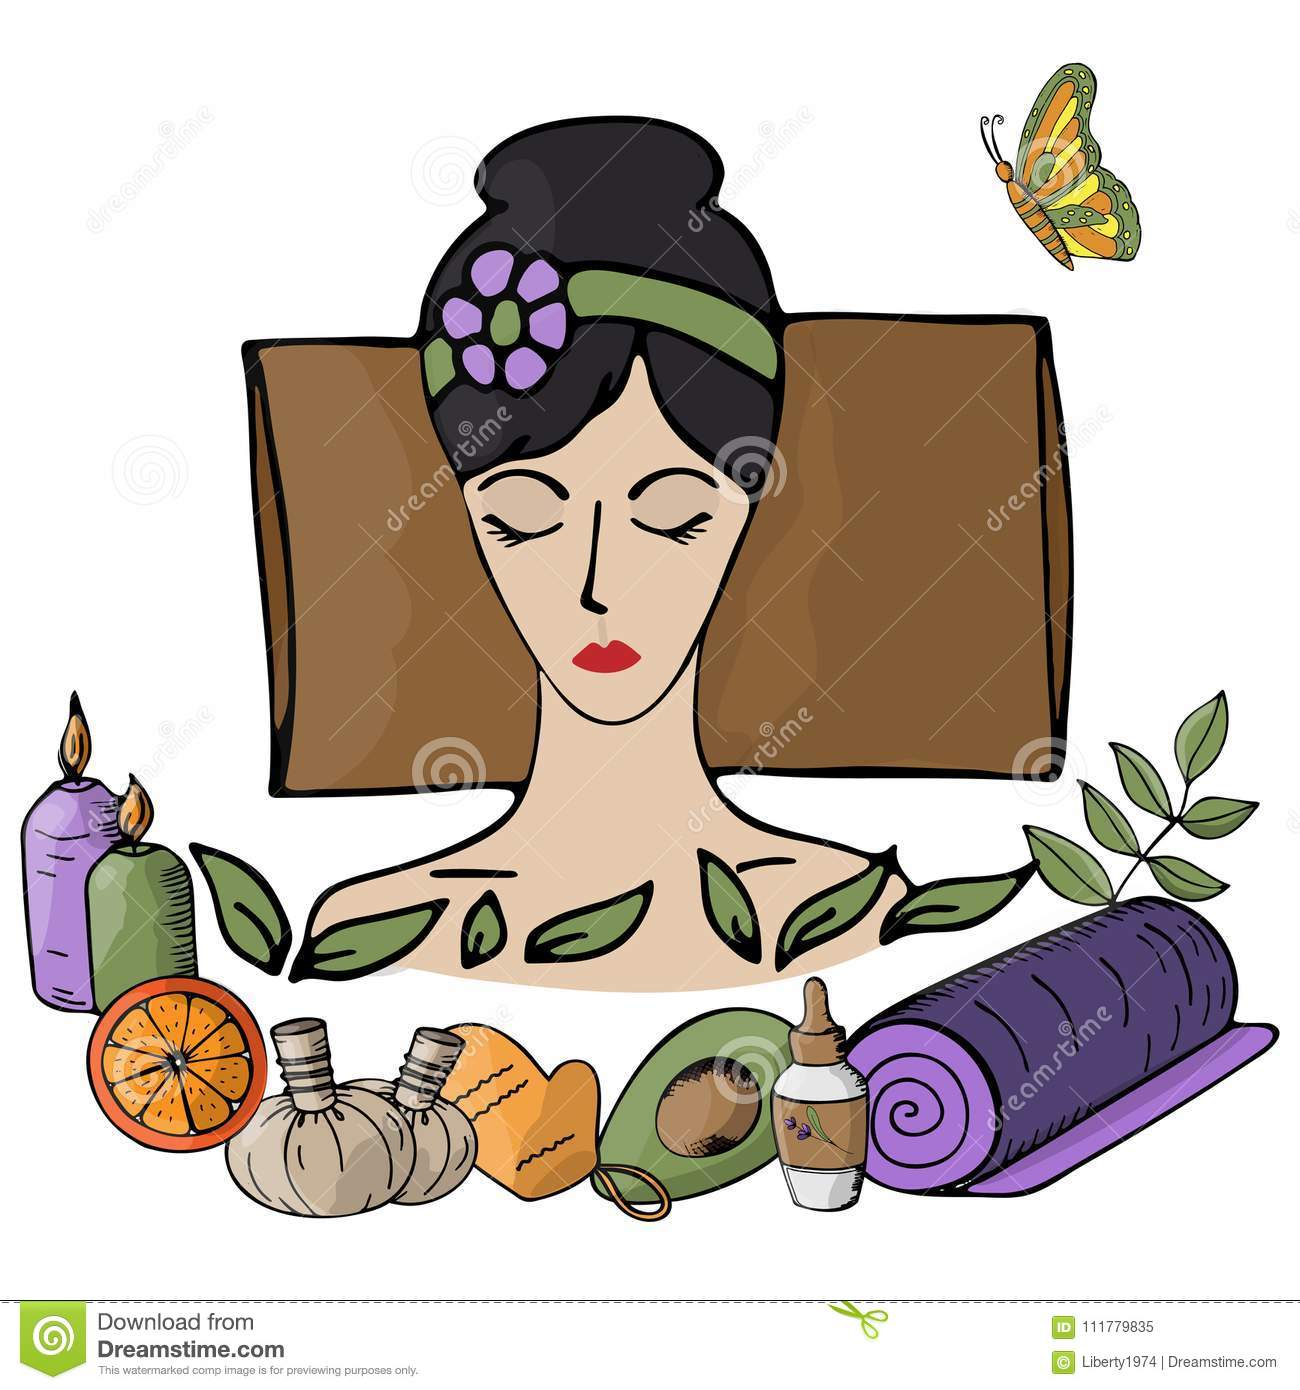 Vector illustration. Girl at the spa procedures enjoys the process. Body care, health, massage, relaxation